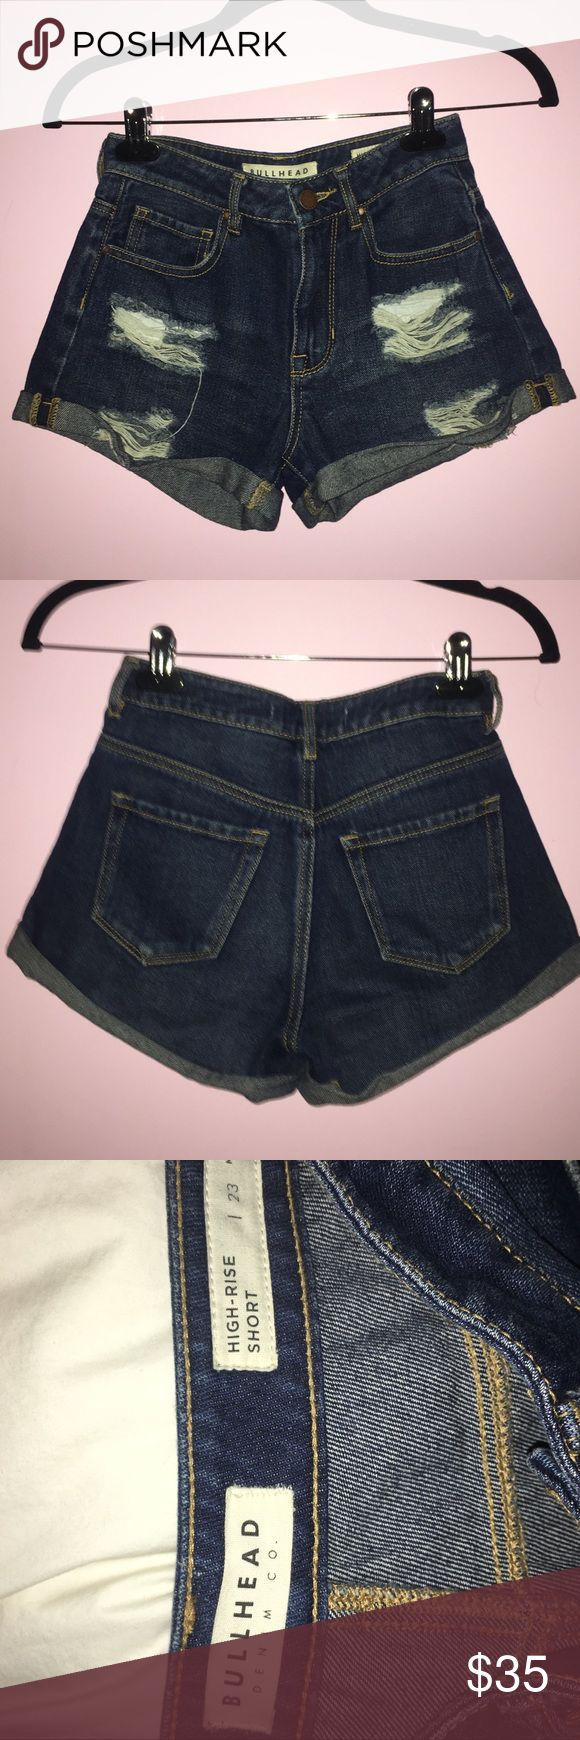 Bullhead Girlfriend Highrise denim shorts BARELY WORN!! Bullhead Black, Girlfriend shorts, dark wash denim, holes on the front of shorts. Cuffed, and high rise. Size 23 Bullhead Shorts Jean Shorts